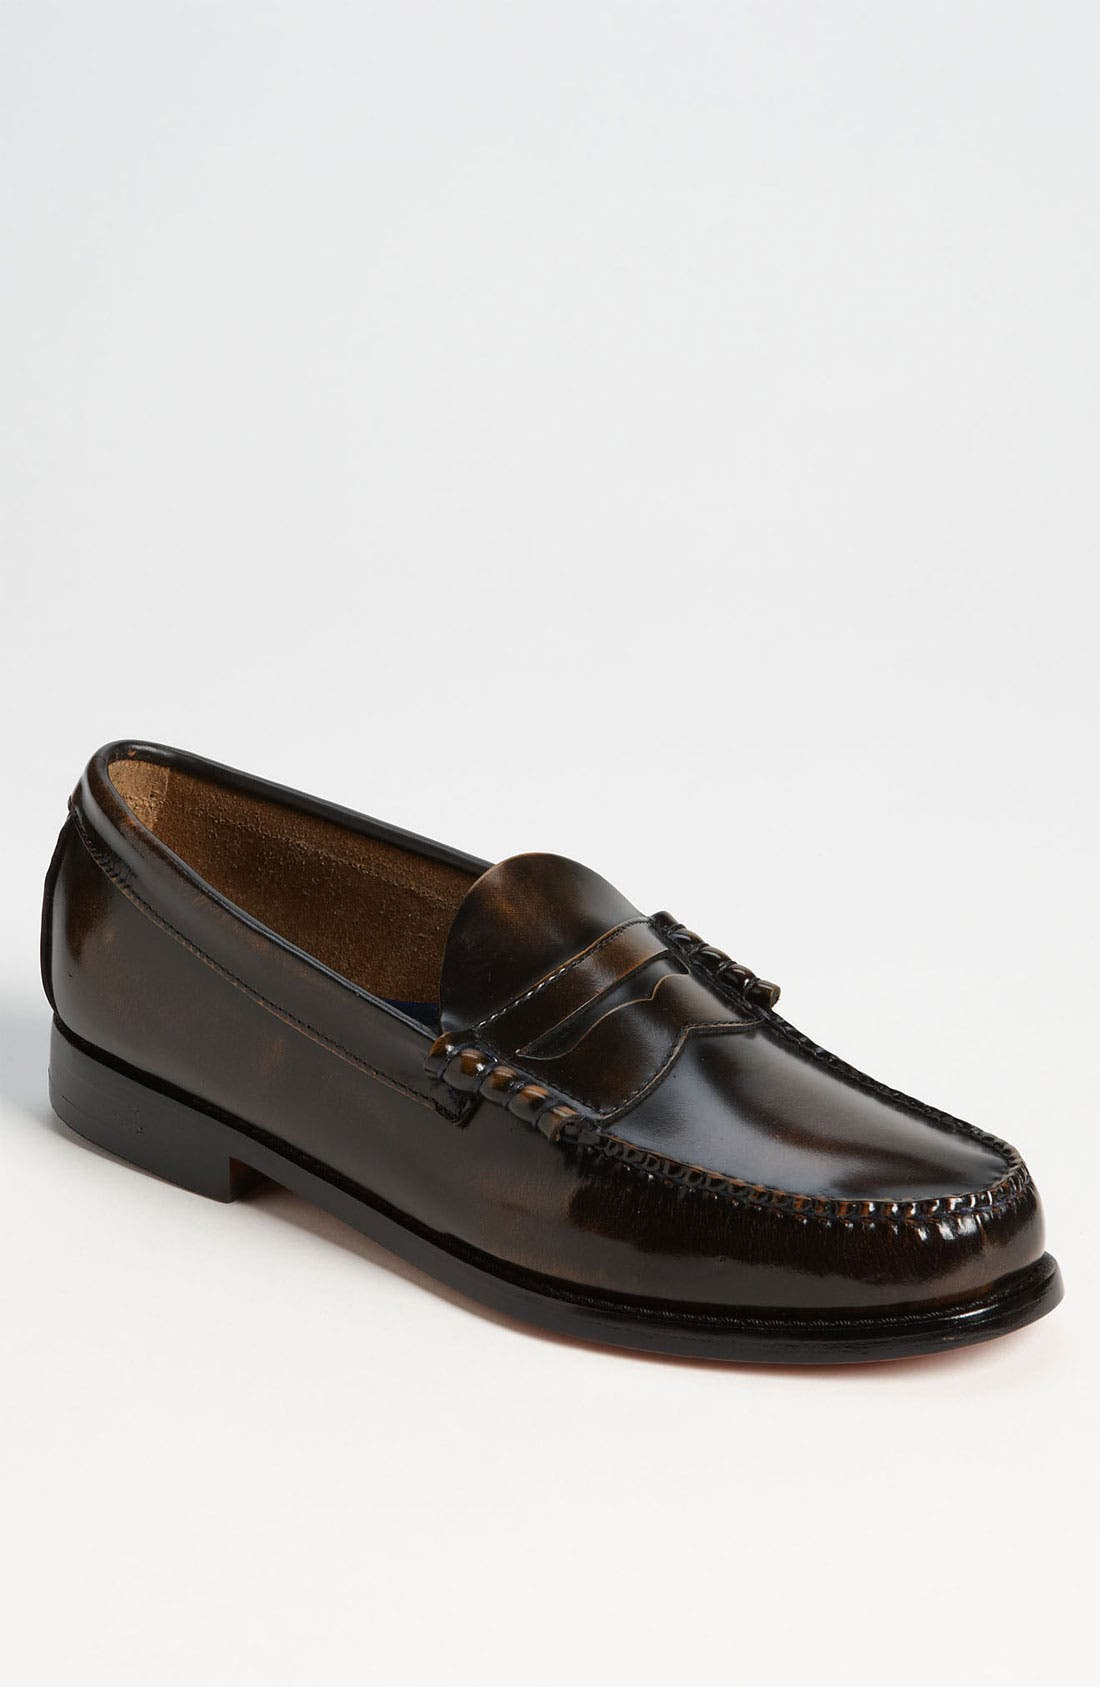 Main Image - G.H. Bass & Co. 'Weejuns - Larson' Beef Roll Loafer